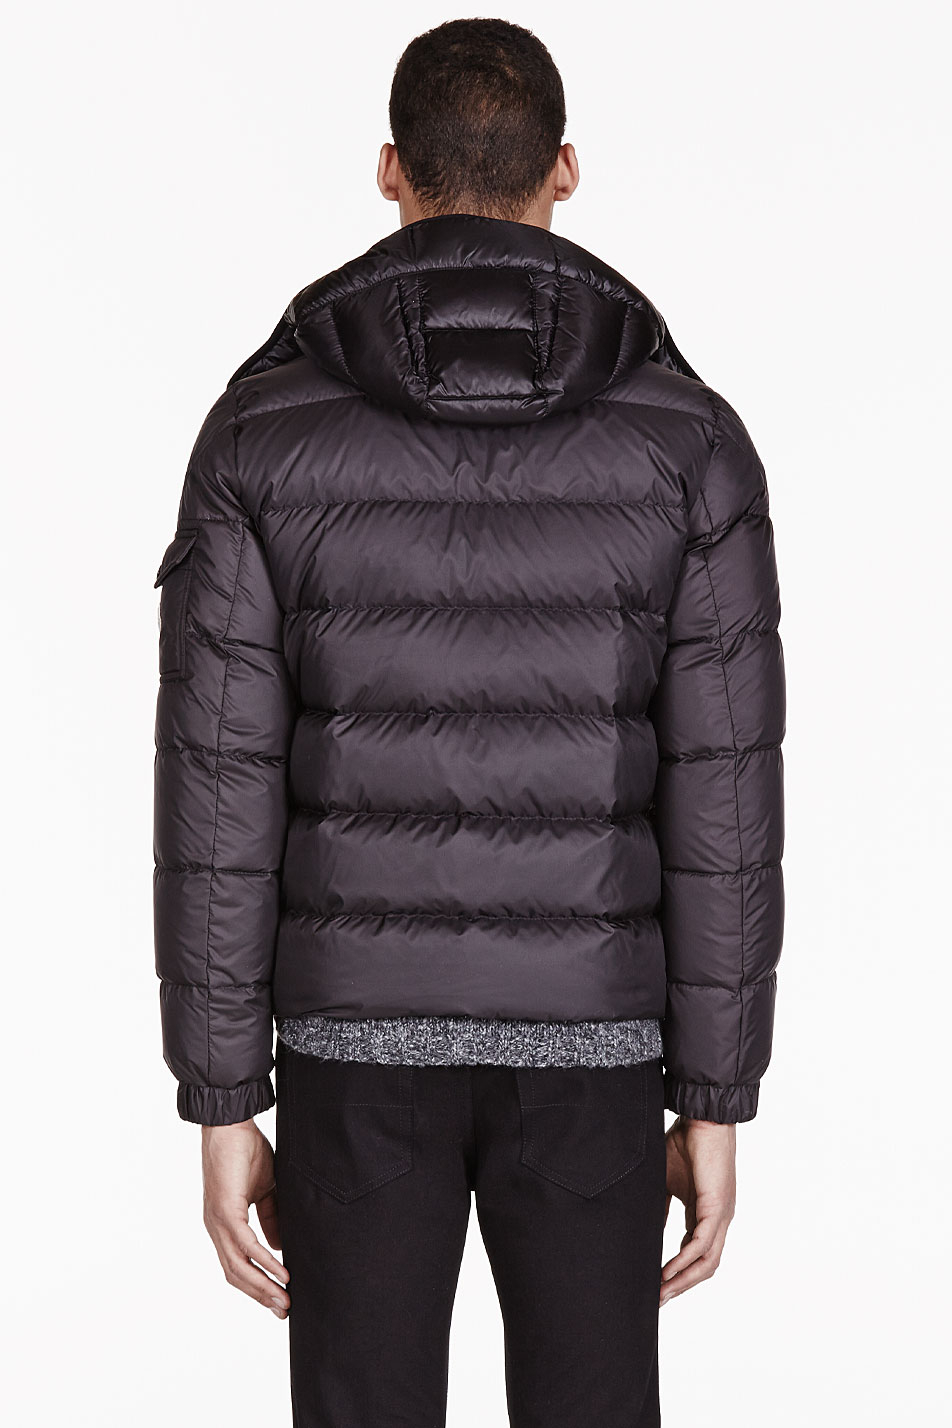 a24d3a0ea purchase moncler himalaya padded jacket hoodie 499da 20706